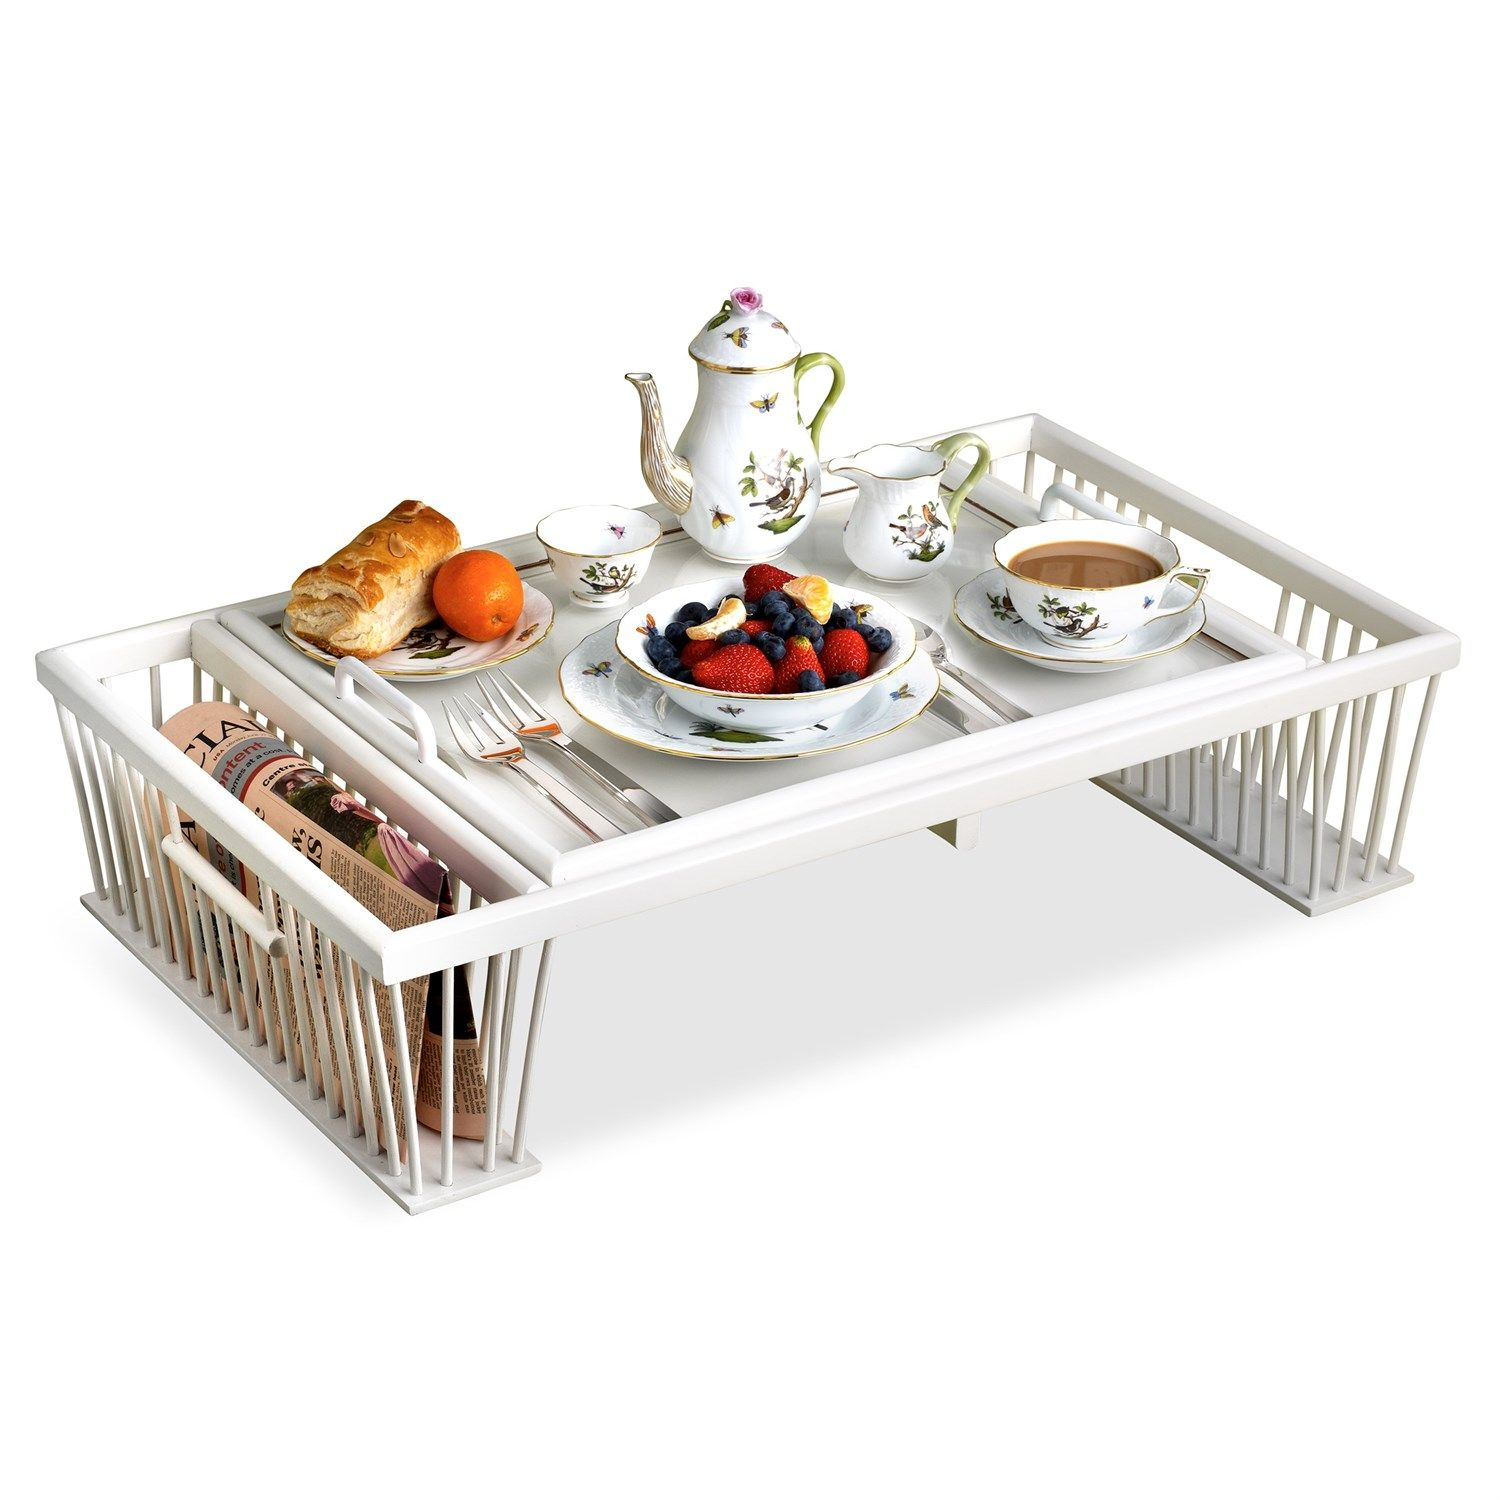 Breakfast Bed Tray With Reading Rack White Bed Tray Breakfast Tray Tray Decor